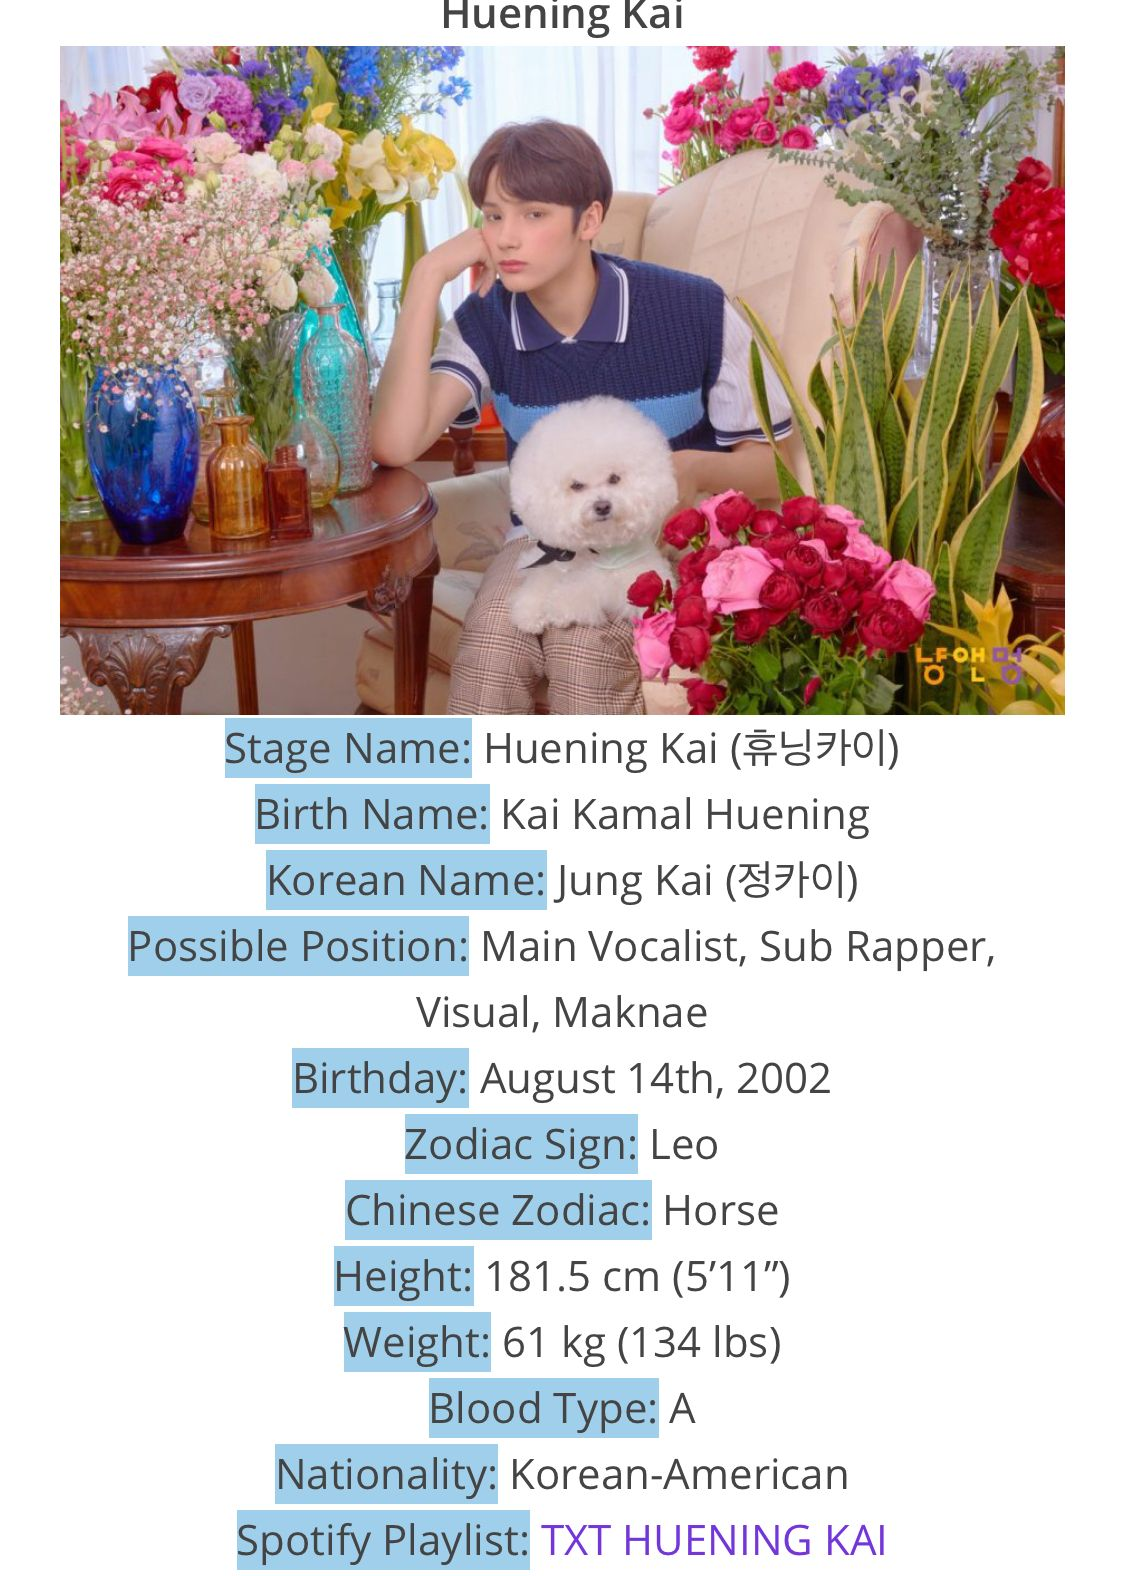 Huenibgkai Facts By Kprofiles Kprofiles Txt Follow Me For More Zoeysartaesthetic Txt Facts Beginners Thank you so much for doing this list and the kpop birthday list! kprofiles kprofiles txt follow